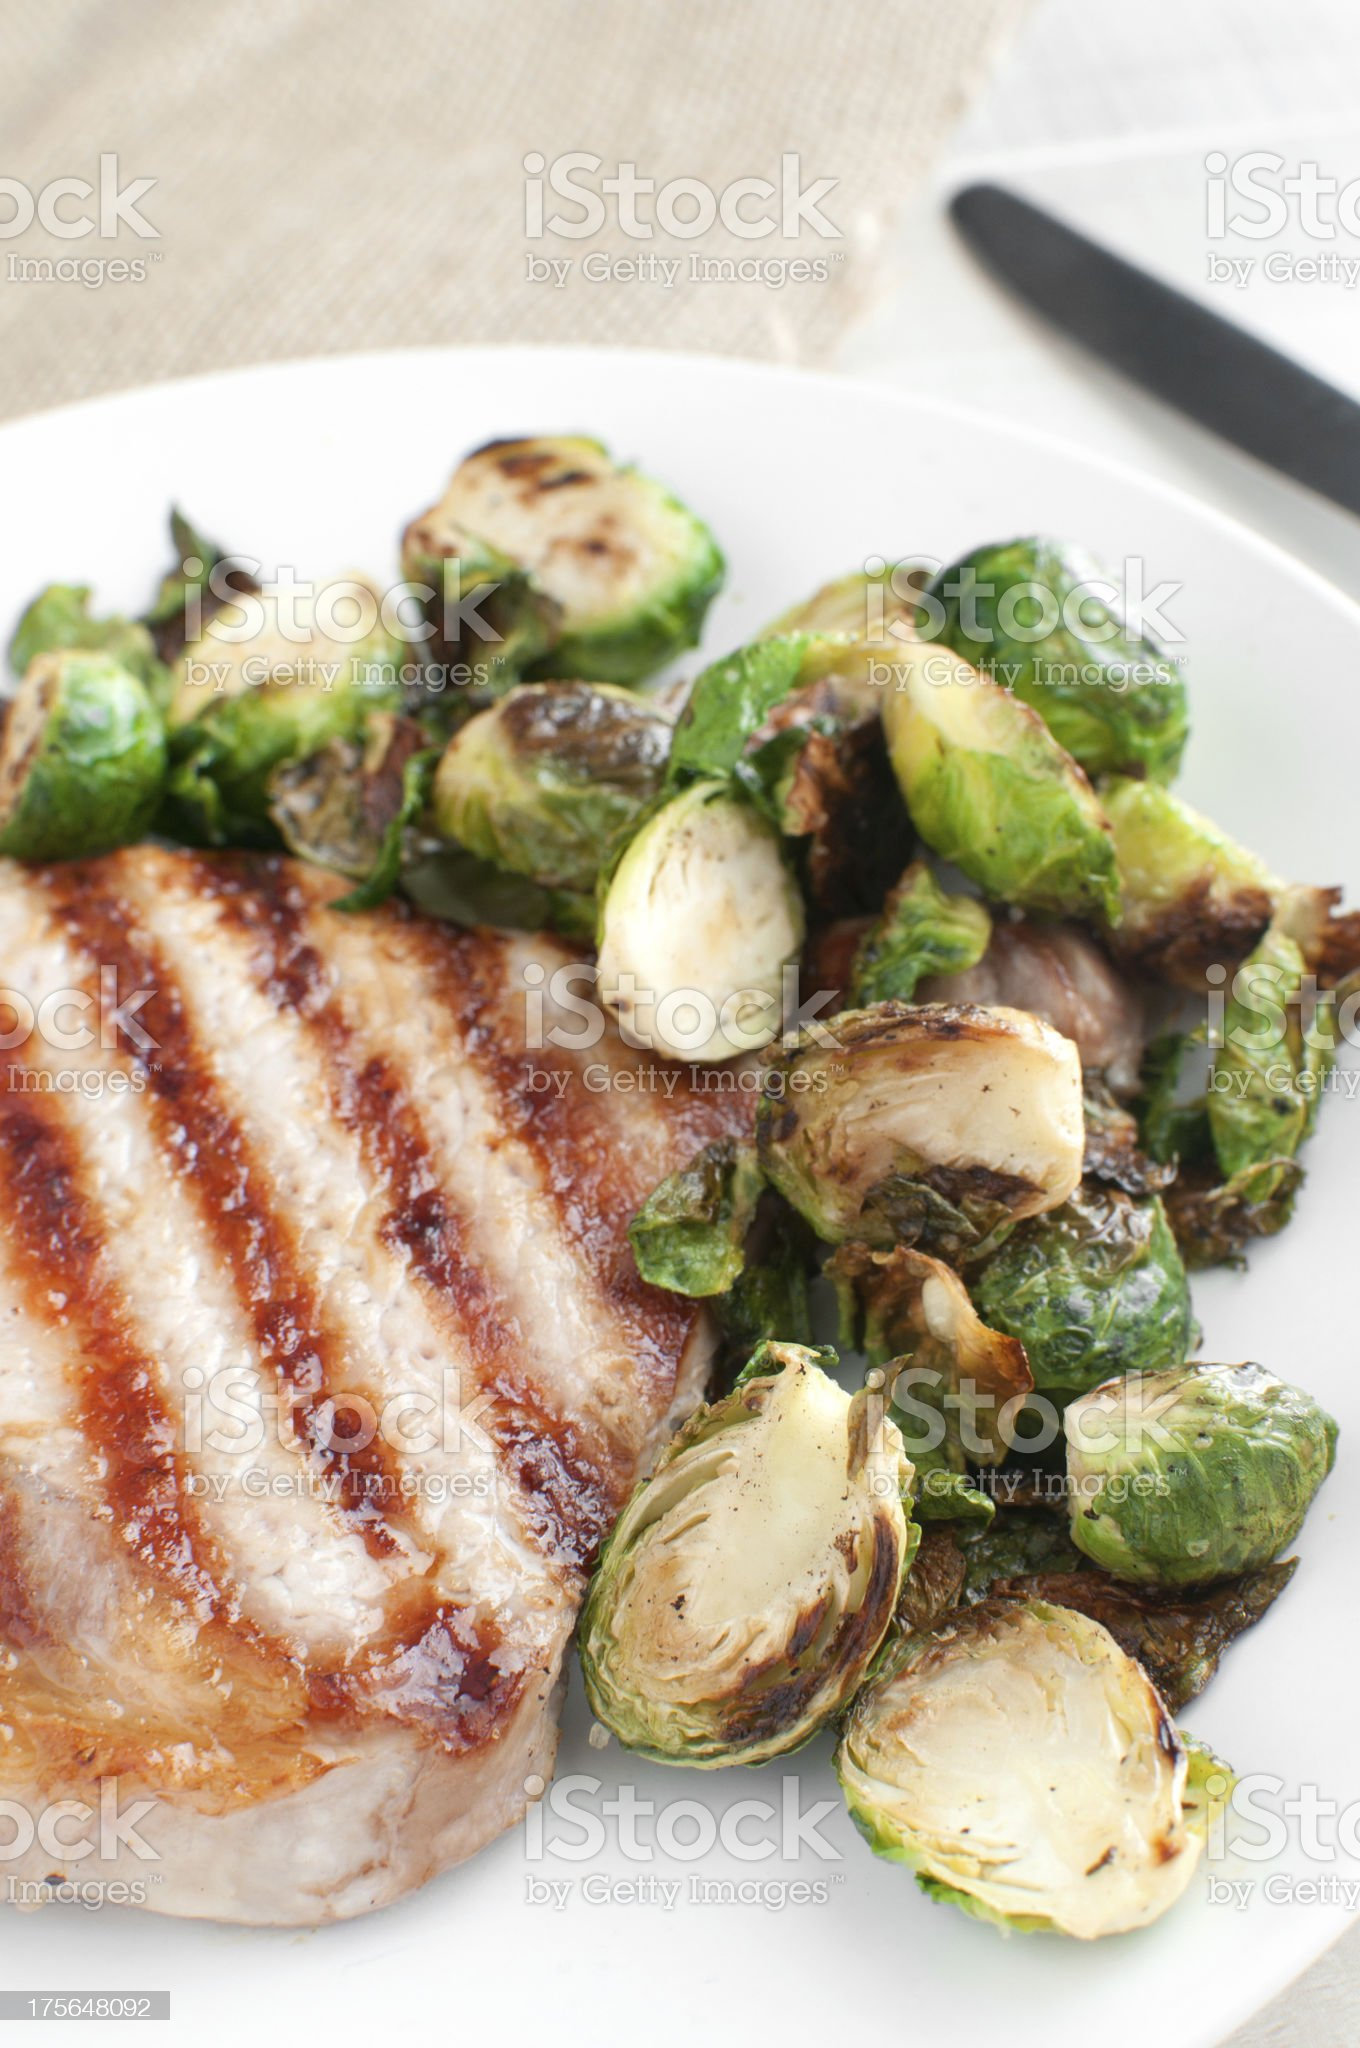 Grilled brussels sprouts and pork meat royalty-free stock photo